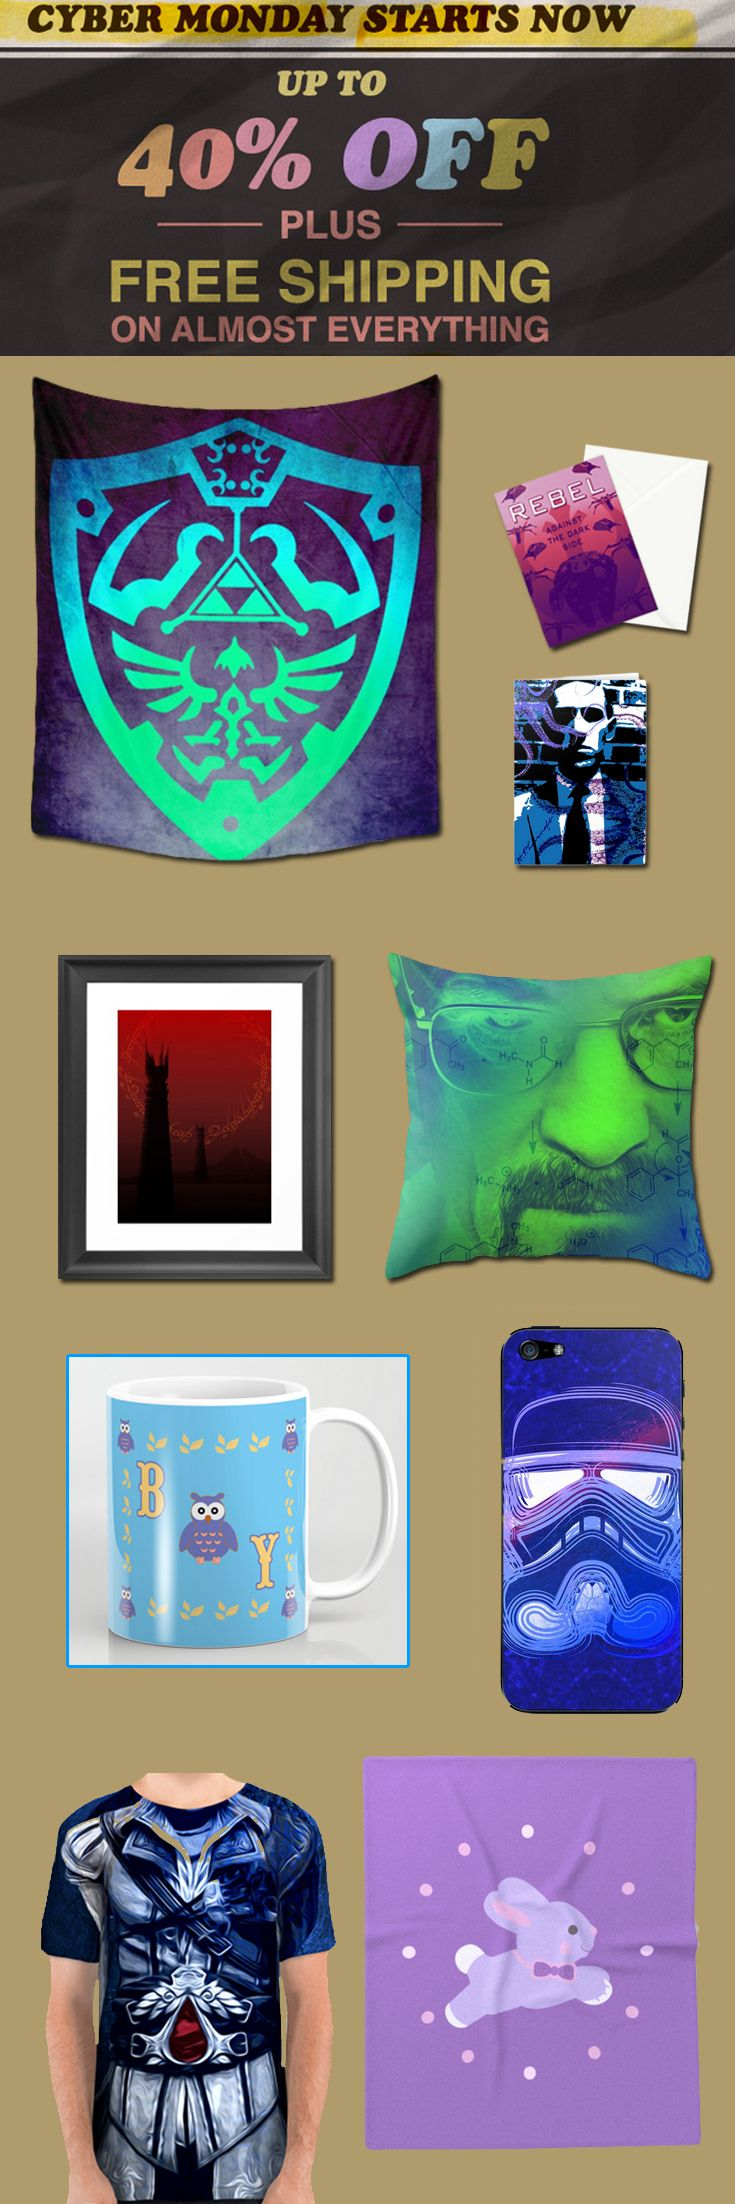 CYBER MONDAY 2017 40% OFF + FREE SHIPPING on almost Everything!! #cybermonday #cybermonday2017 #gifts #sales #save #discount #christmasgifts #xmasgifts #family #shopping #giftsforhim #giftsforher #society6 #shopping #style #tshirt #walltapestry #iphonecases #postcards #lovecraft #movies #breakingbad #fashion #style #homedecor #baby #babyblanket #babygifts #mug #coffeemug #home #cinema #dorm #home #thelegendofzelda #gaming #gamer #39 #geek